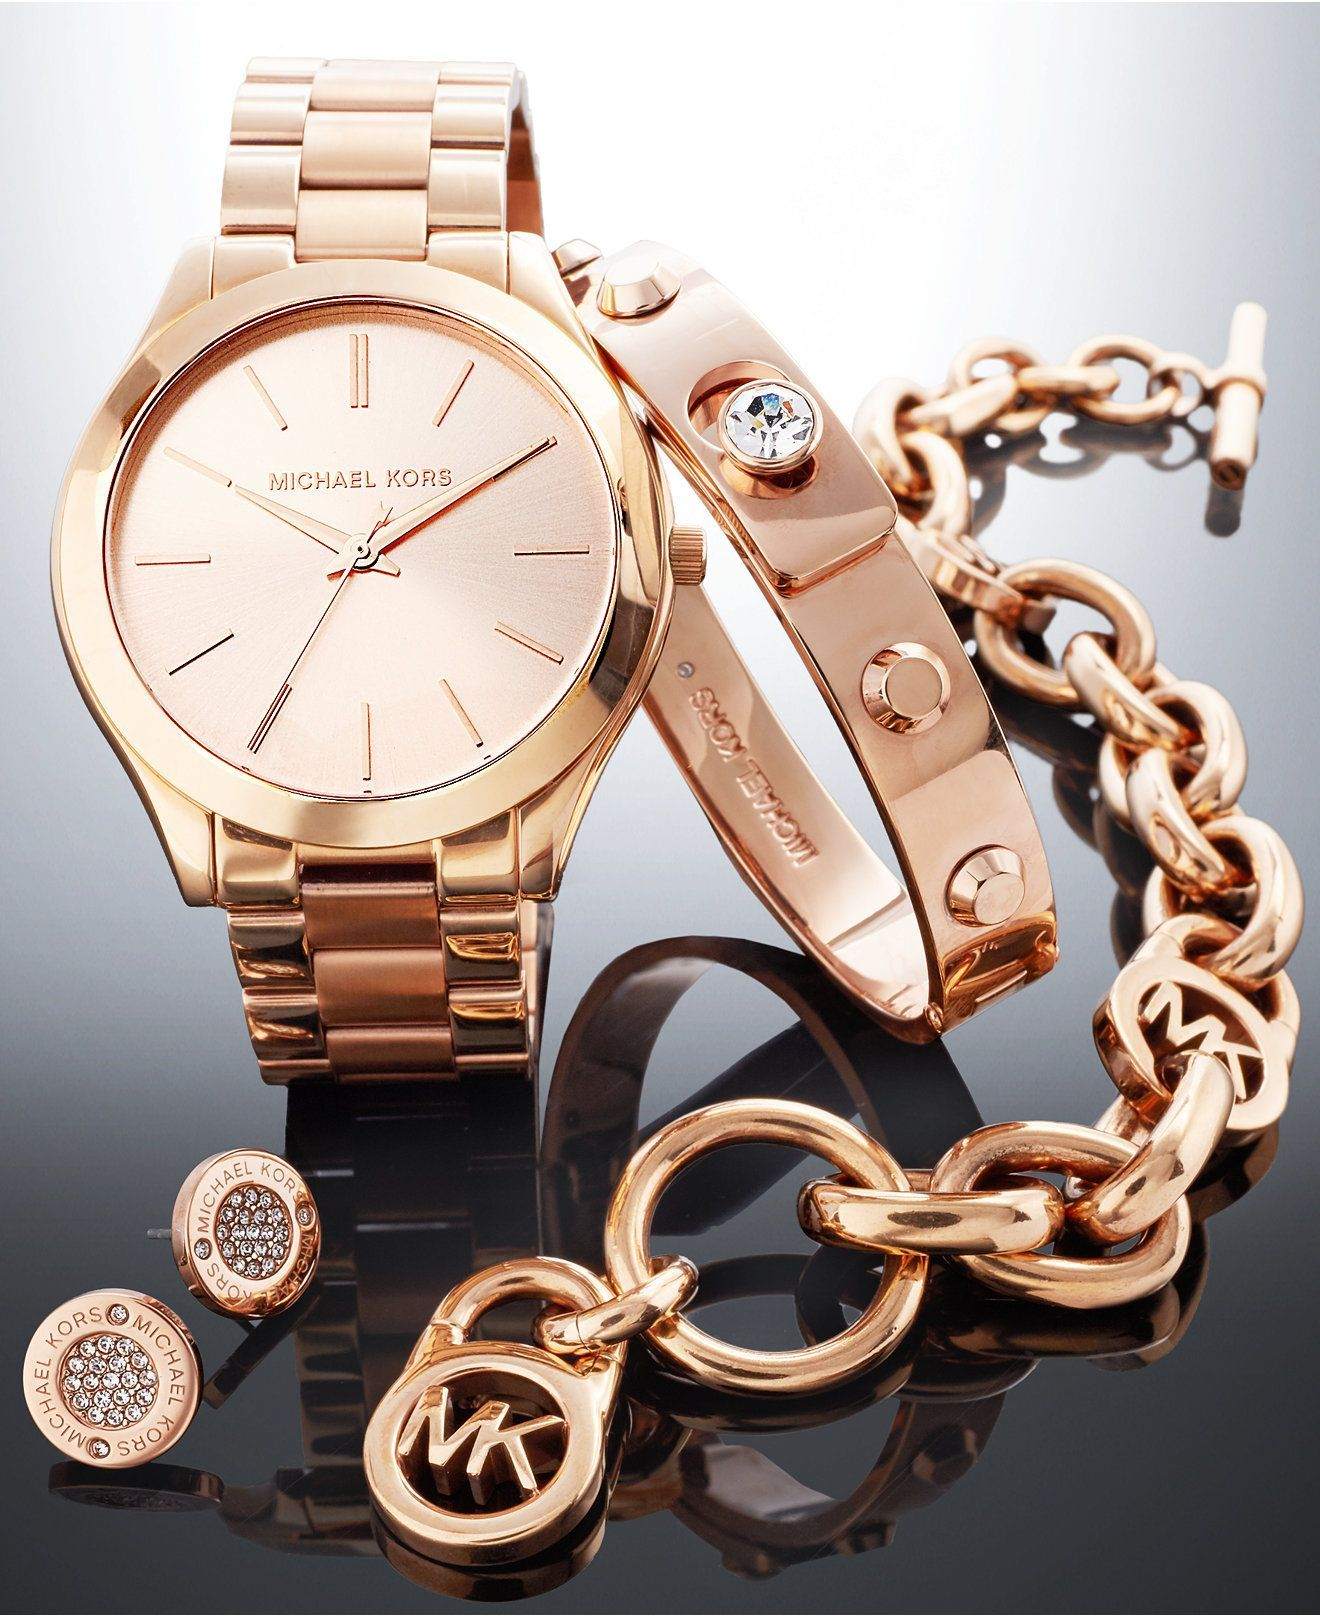 5f72ee243 Michael Kors Rose Gold-Tone Gift Set - Women's Watches - Jewelry & Watches  - Macy's